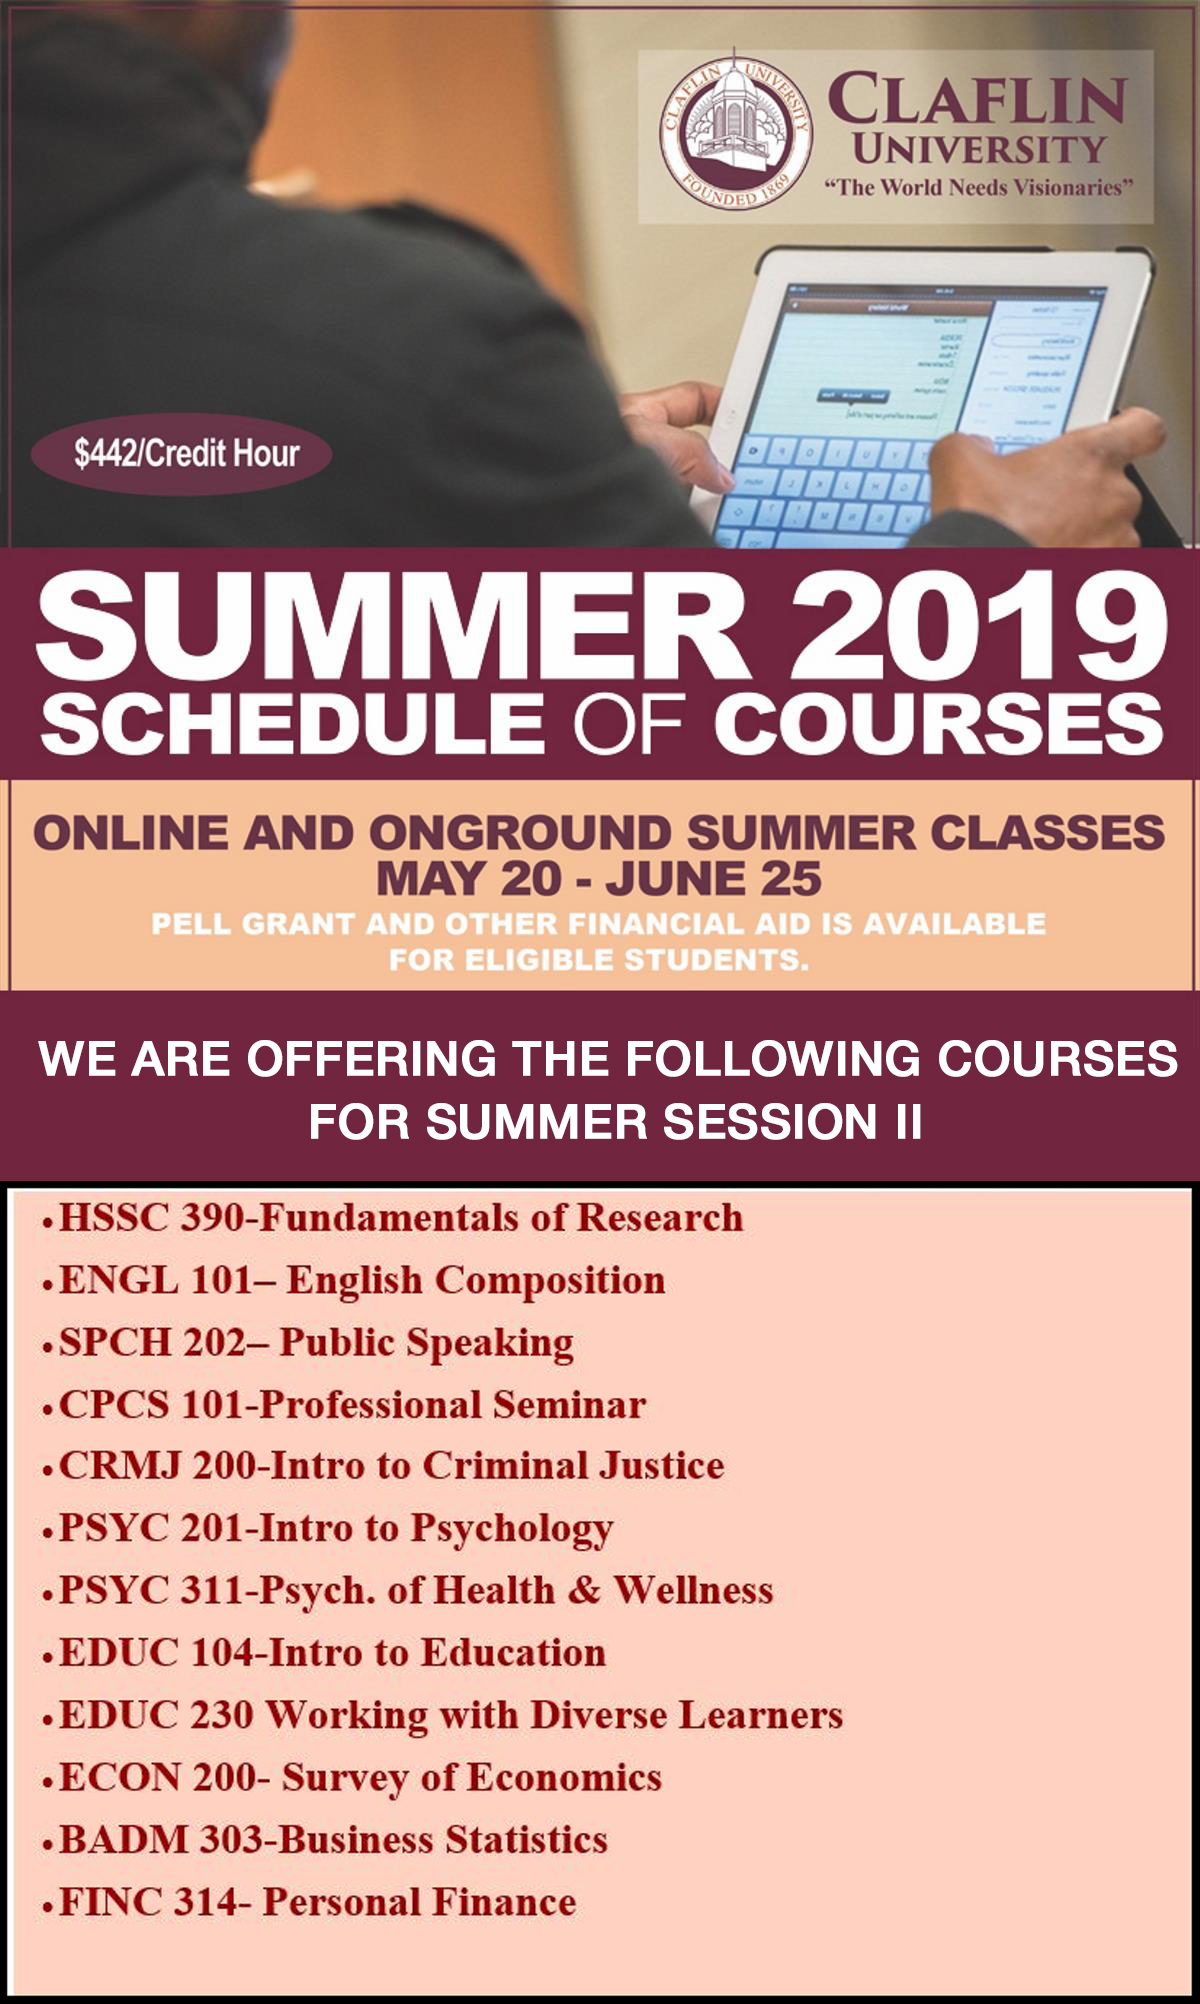 SUMMER SESSION II design